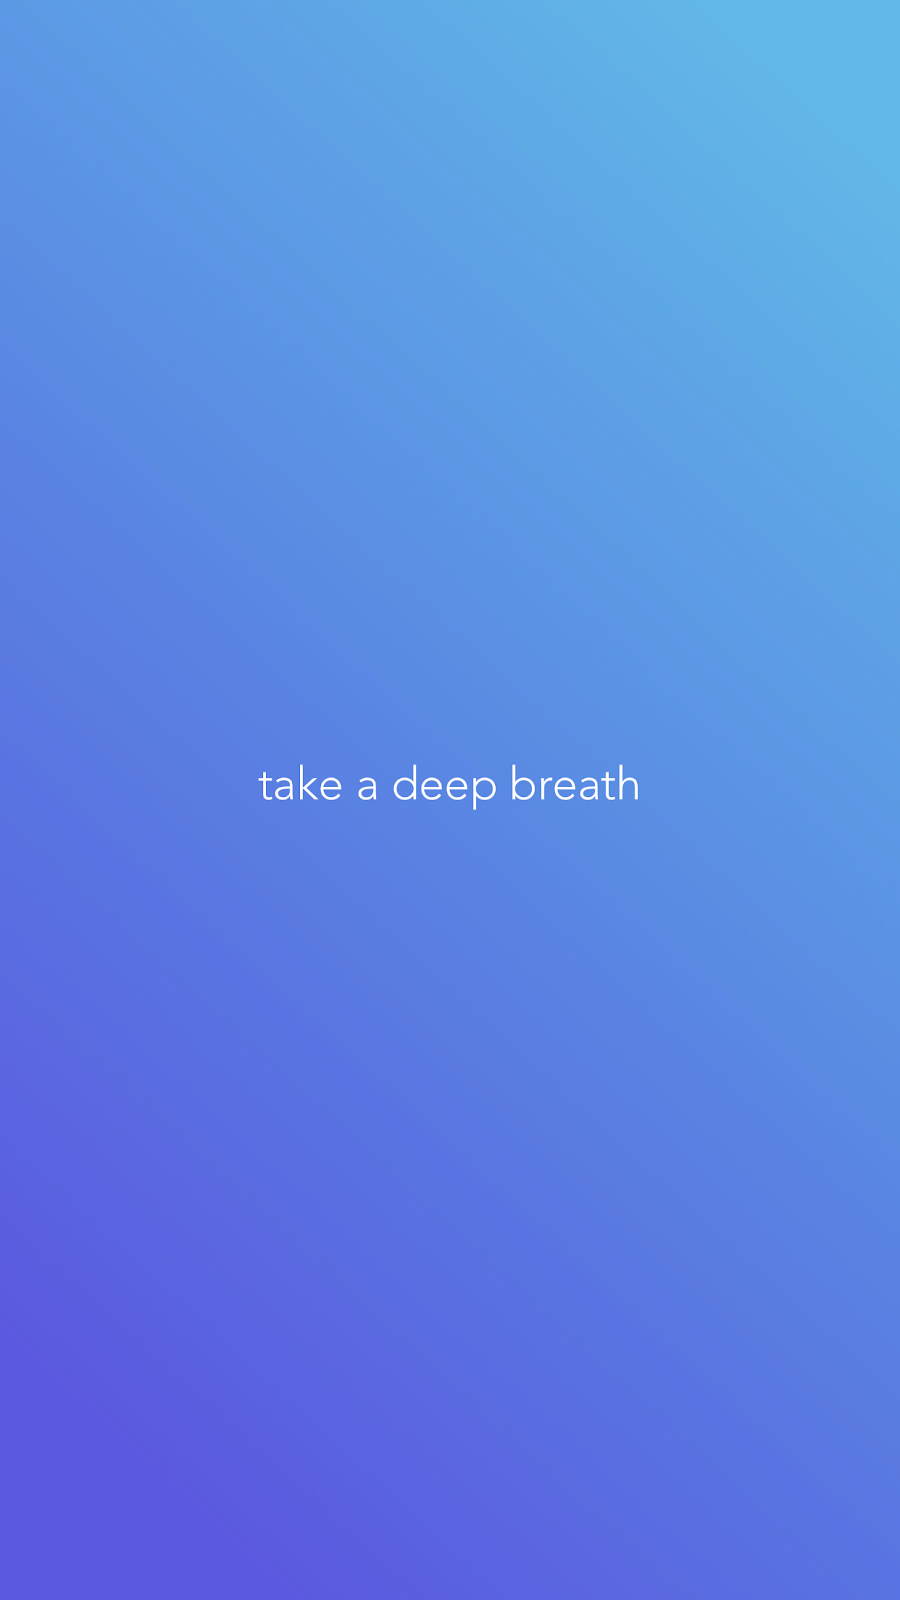 """mobile screenshot from mindfulness app Calm. this is the first screen in the new user experience that shows the words """"take a deep breath"""" on a blue gradient background"""